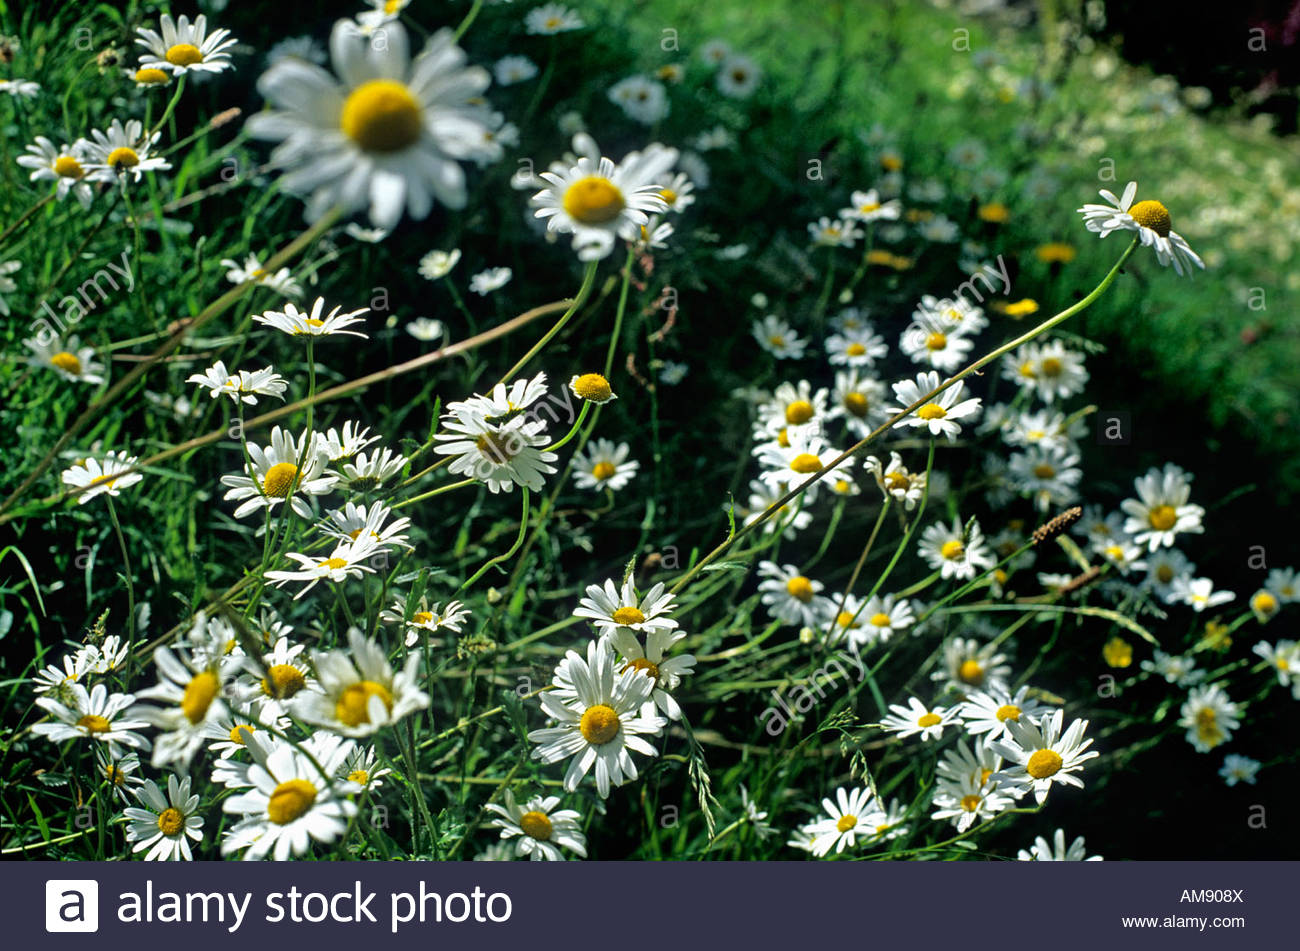 Argyranthemum frutescens marguerite paris daisy large single white argyranthemum frutescens marguerite paris daisy large single white yellow centered daisy like flowers growing in a meadow izmirmasajfo Image collections